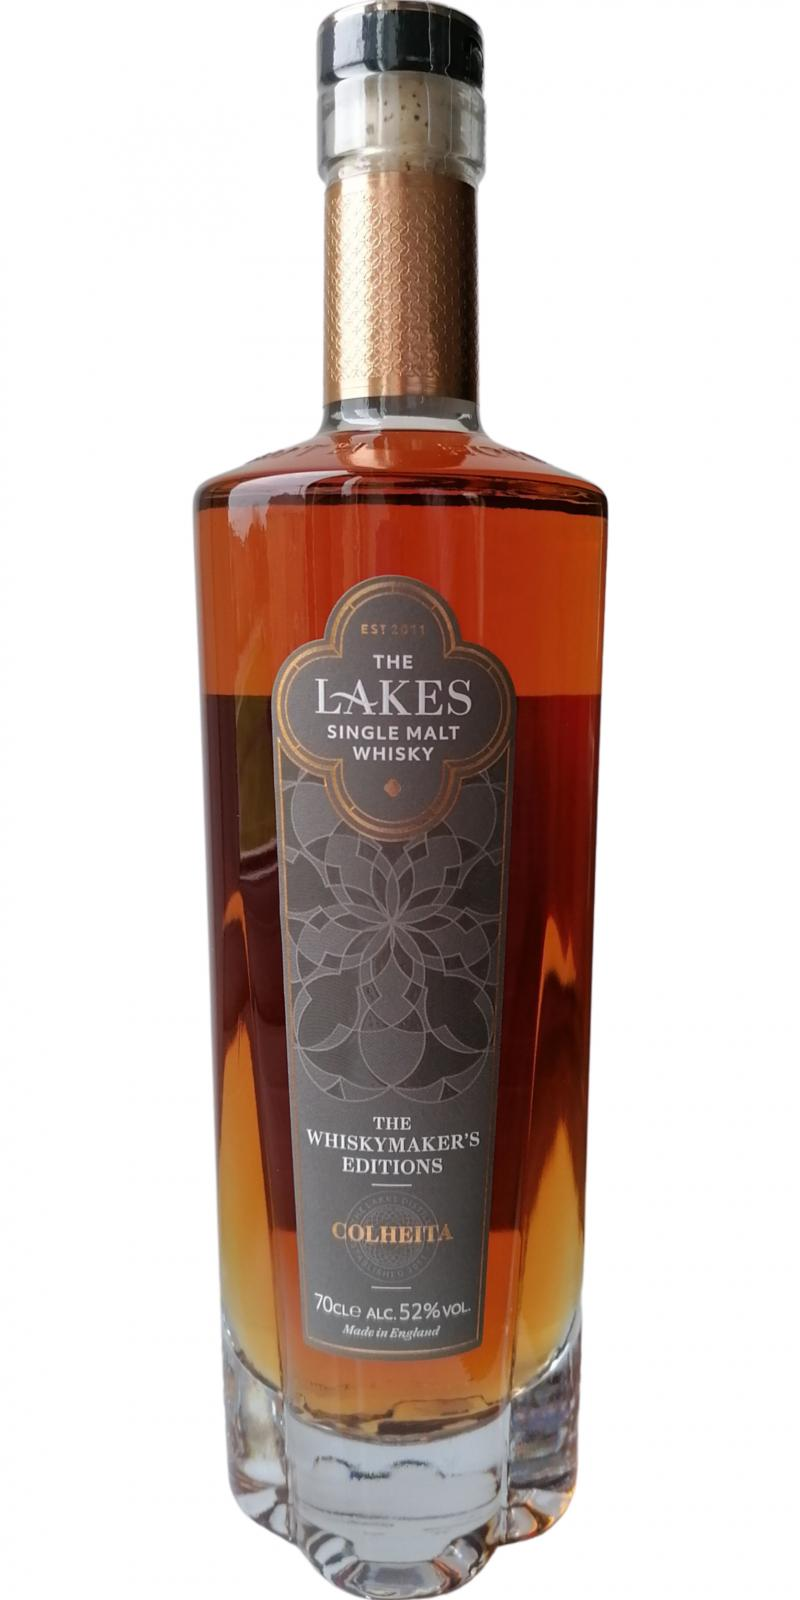 The Lakes The Whiskymaker's Editions